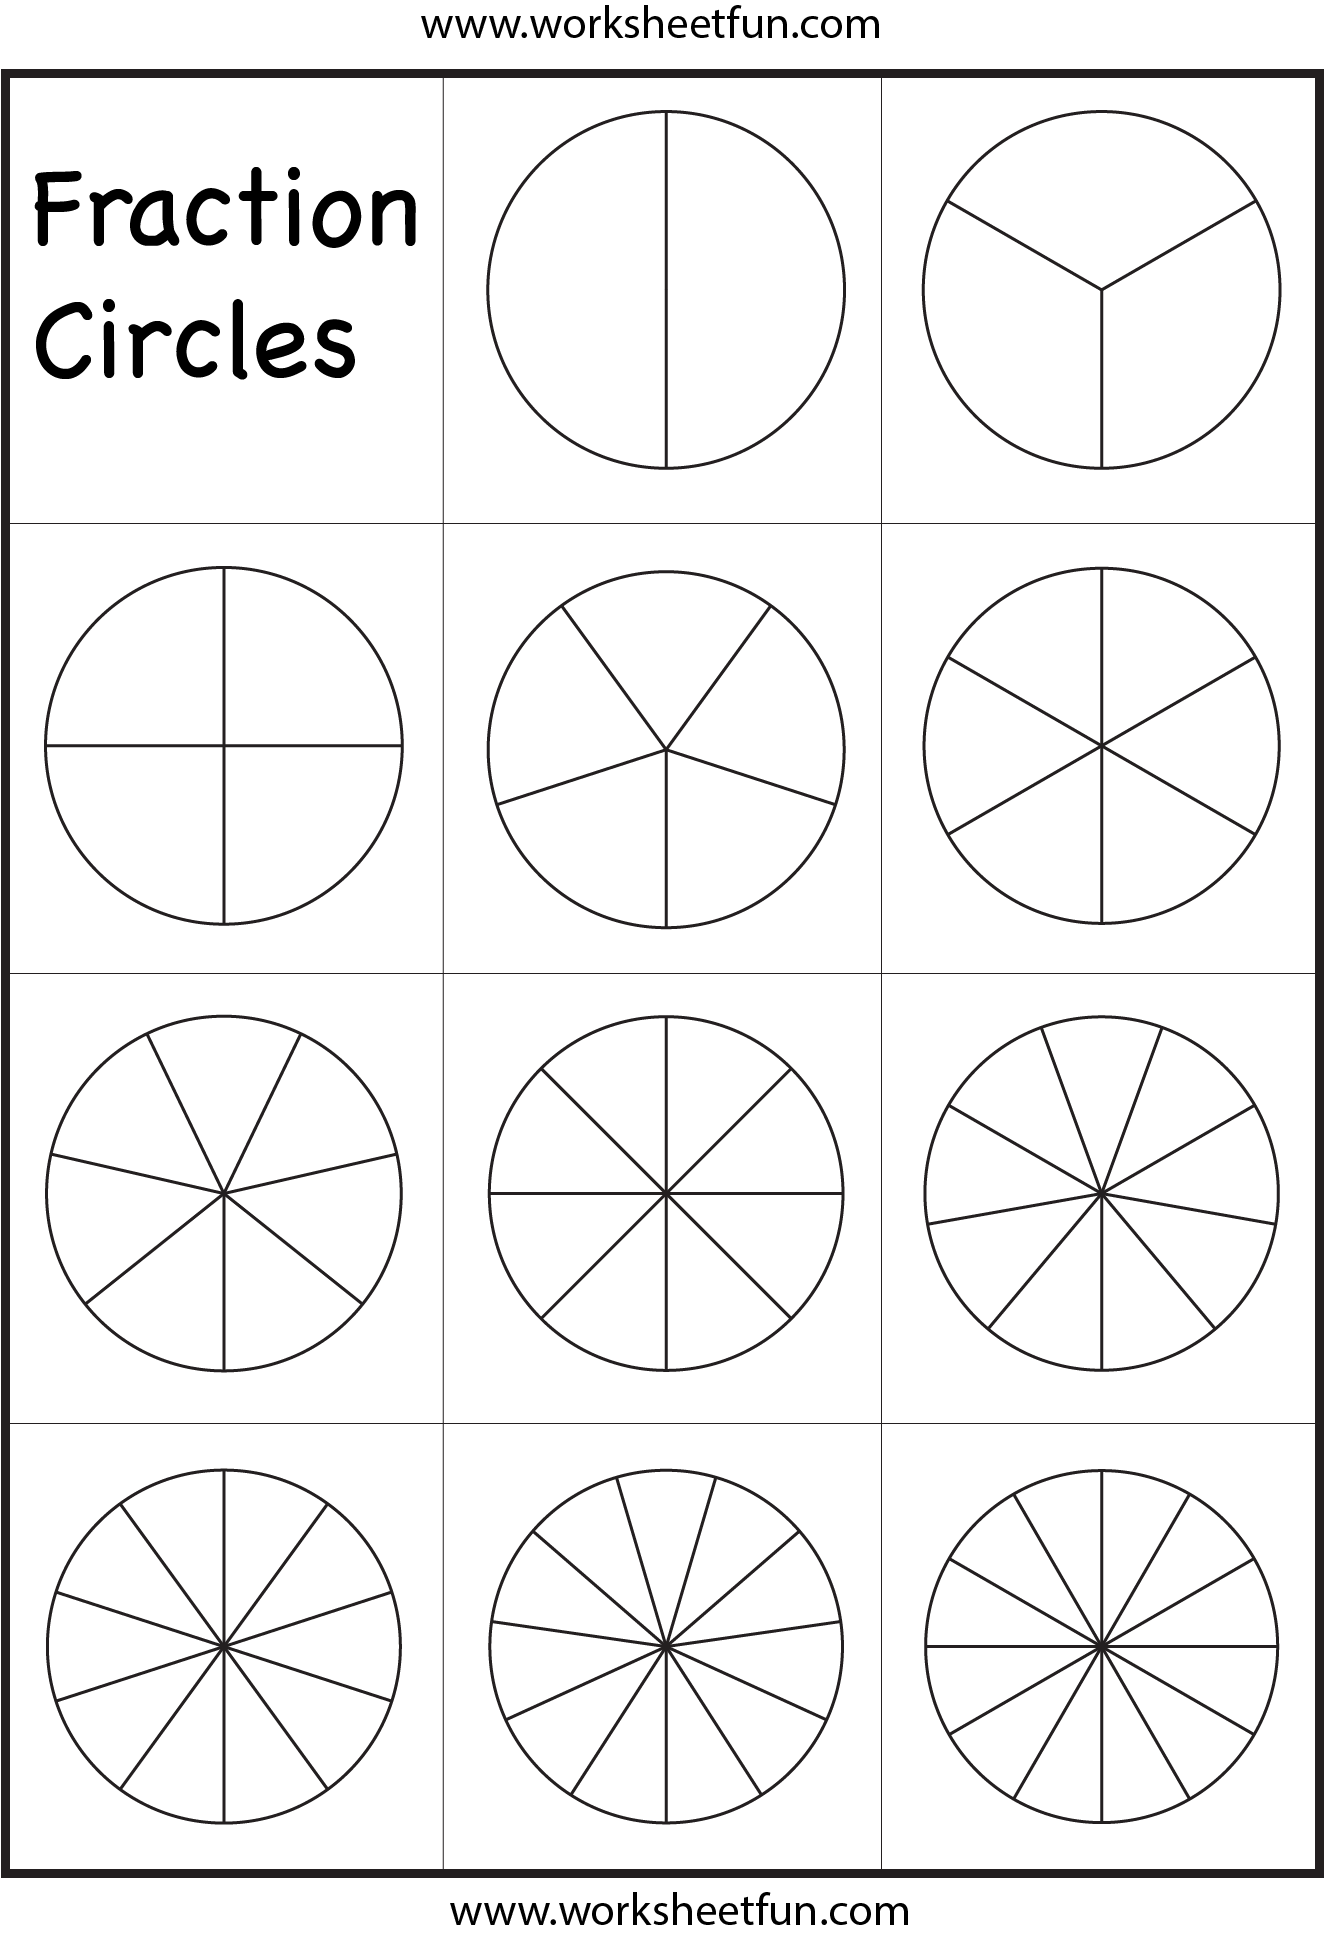 image relating to Circles Printable named Portion Circles Template Printable Portion Circles 1